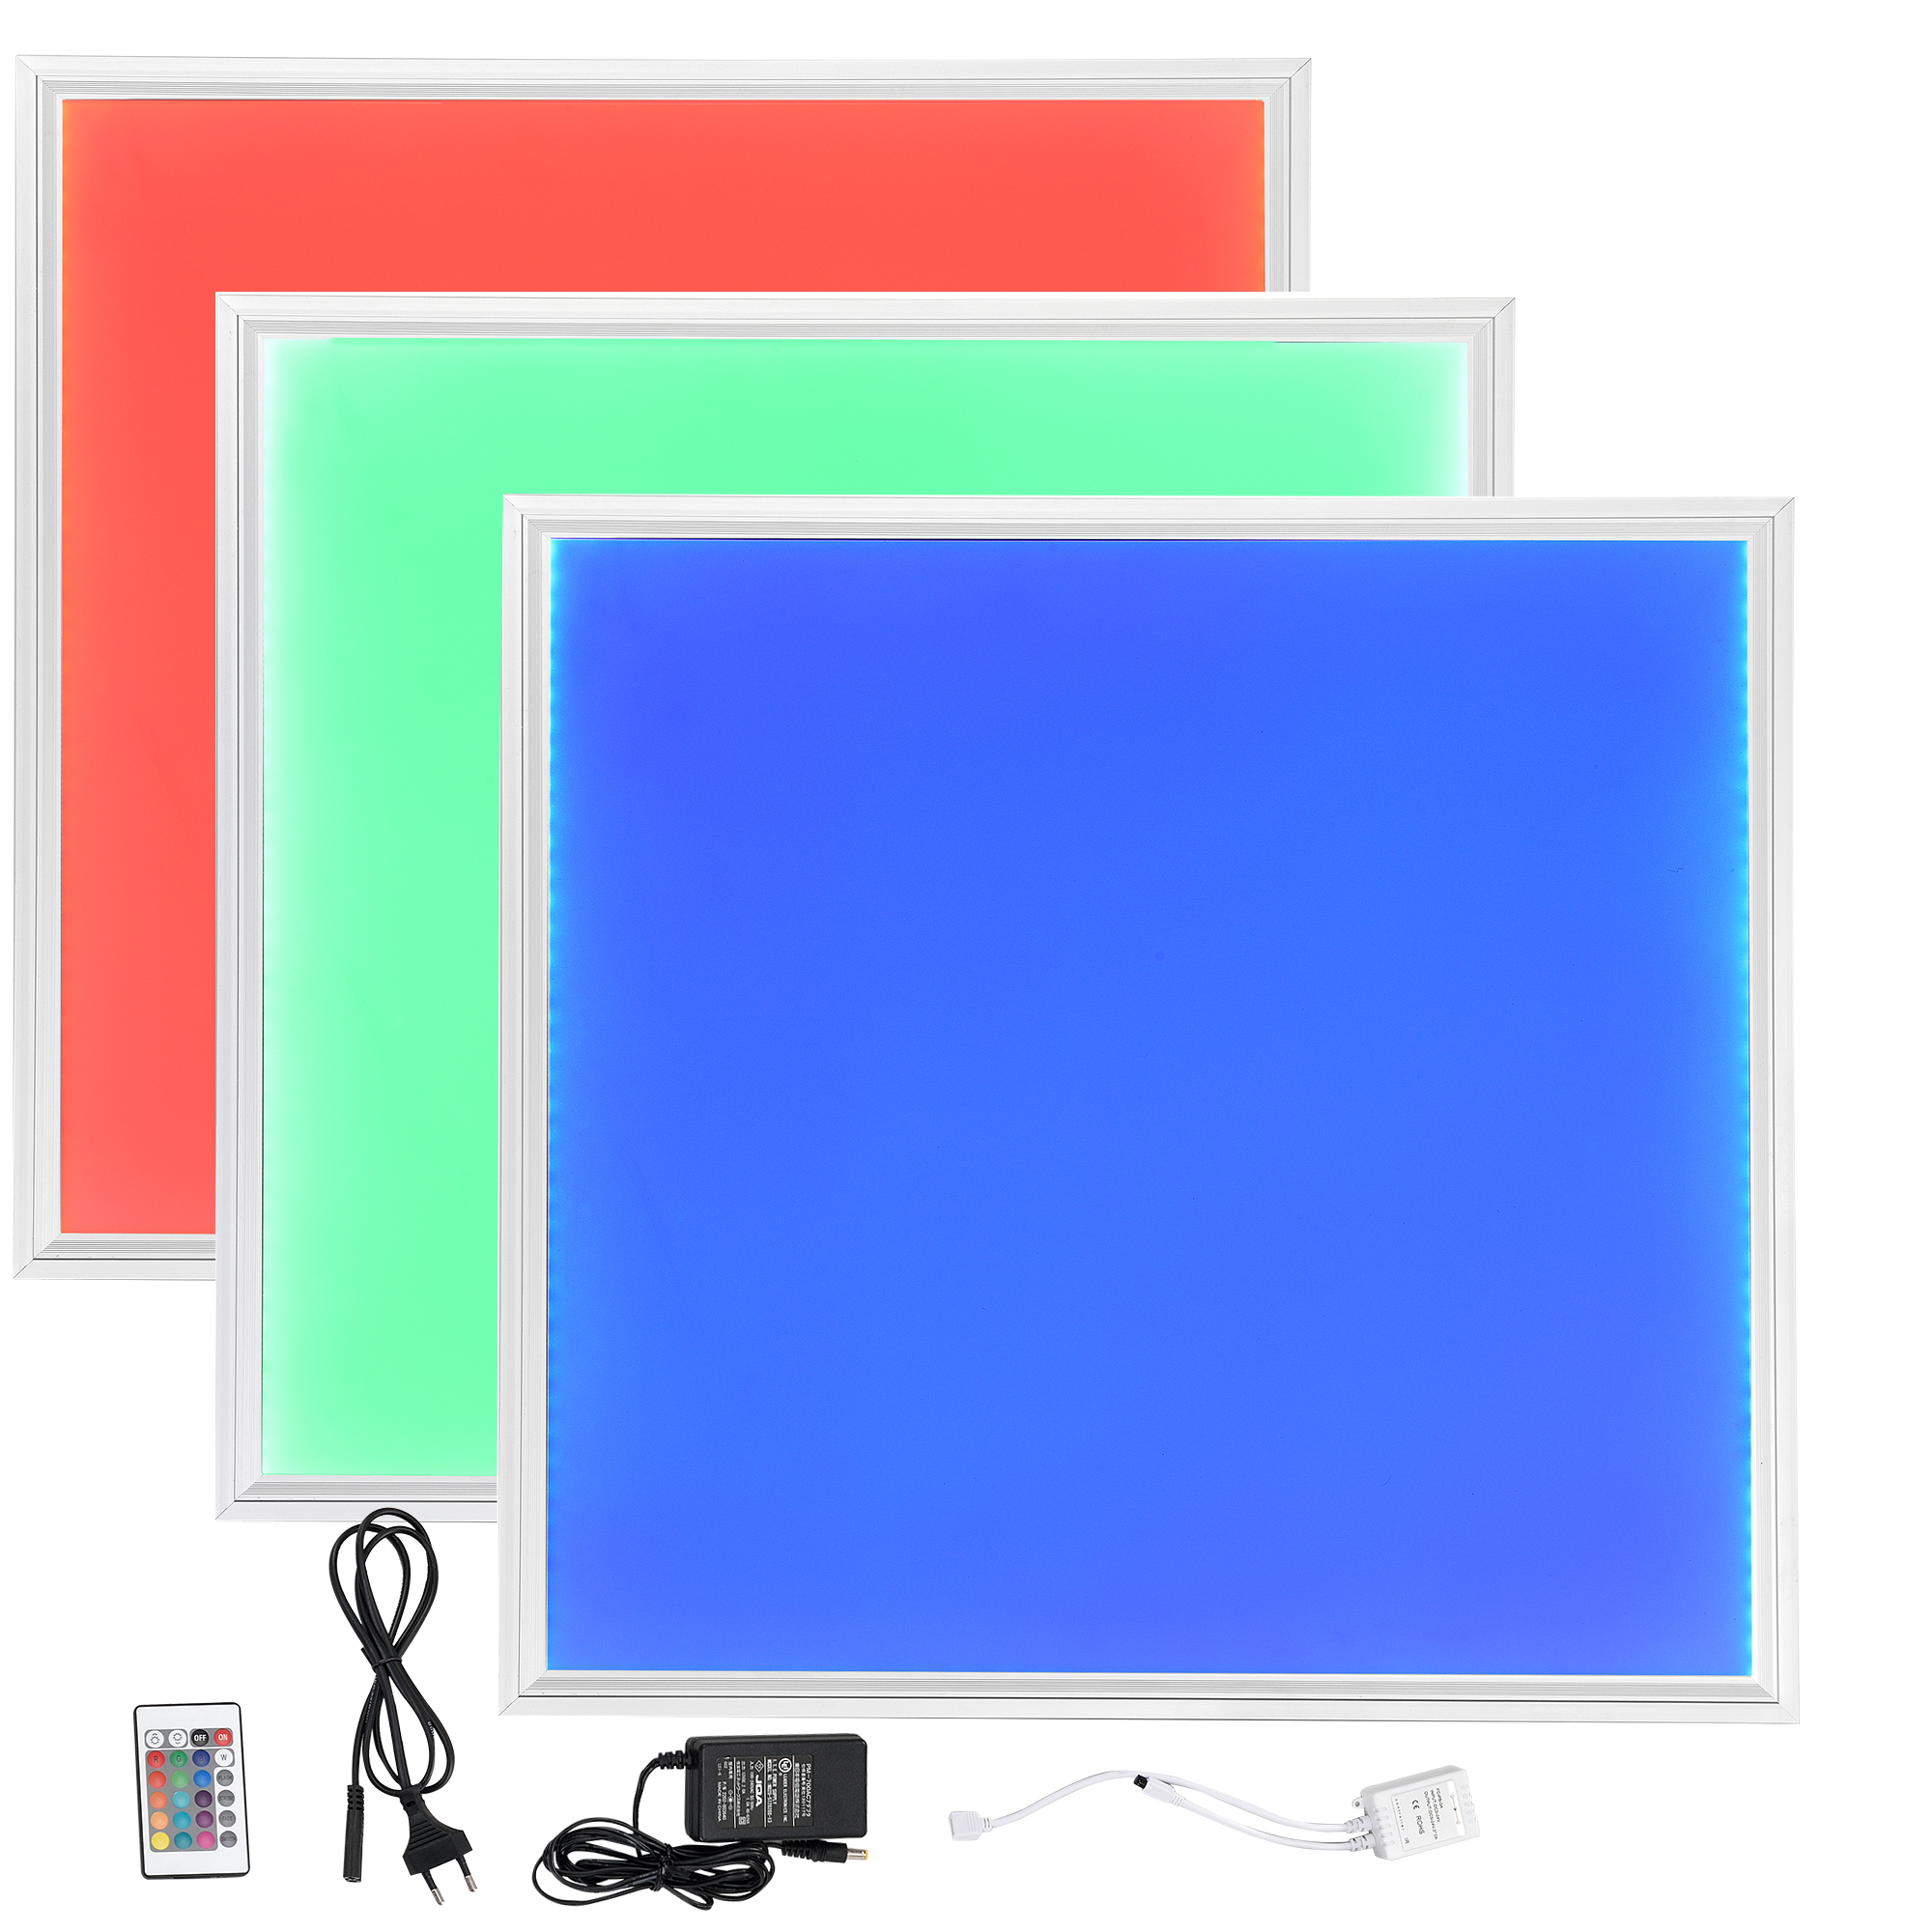 LED-Panel_HLD5503_vorschau Wunderbar Led Panel Rgb Dimmbar Dekorationen